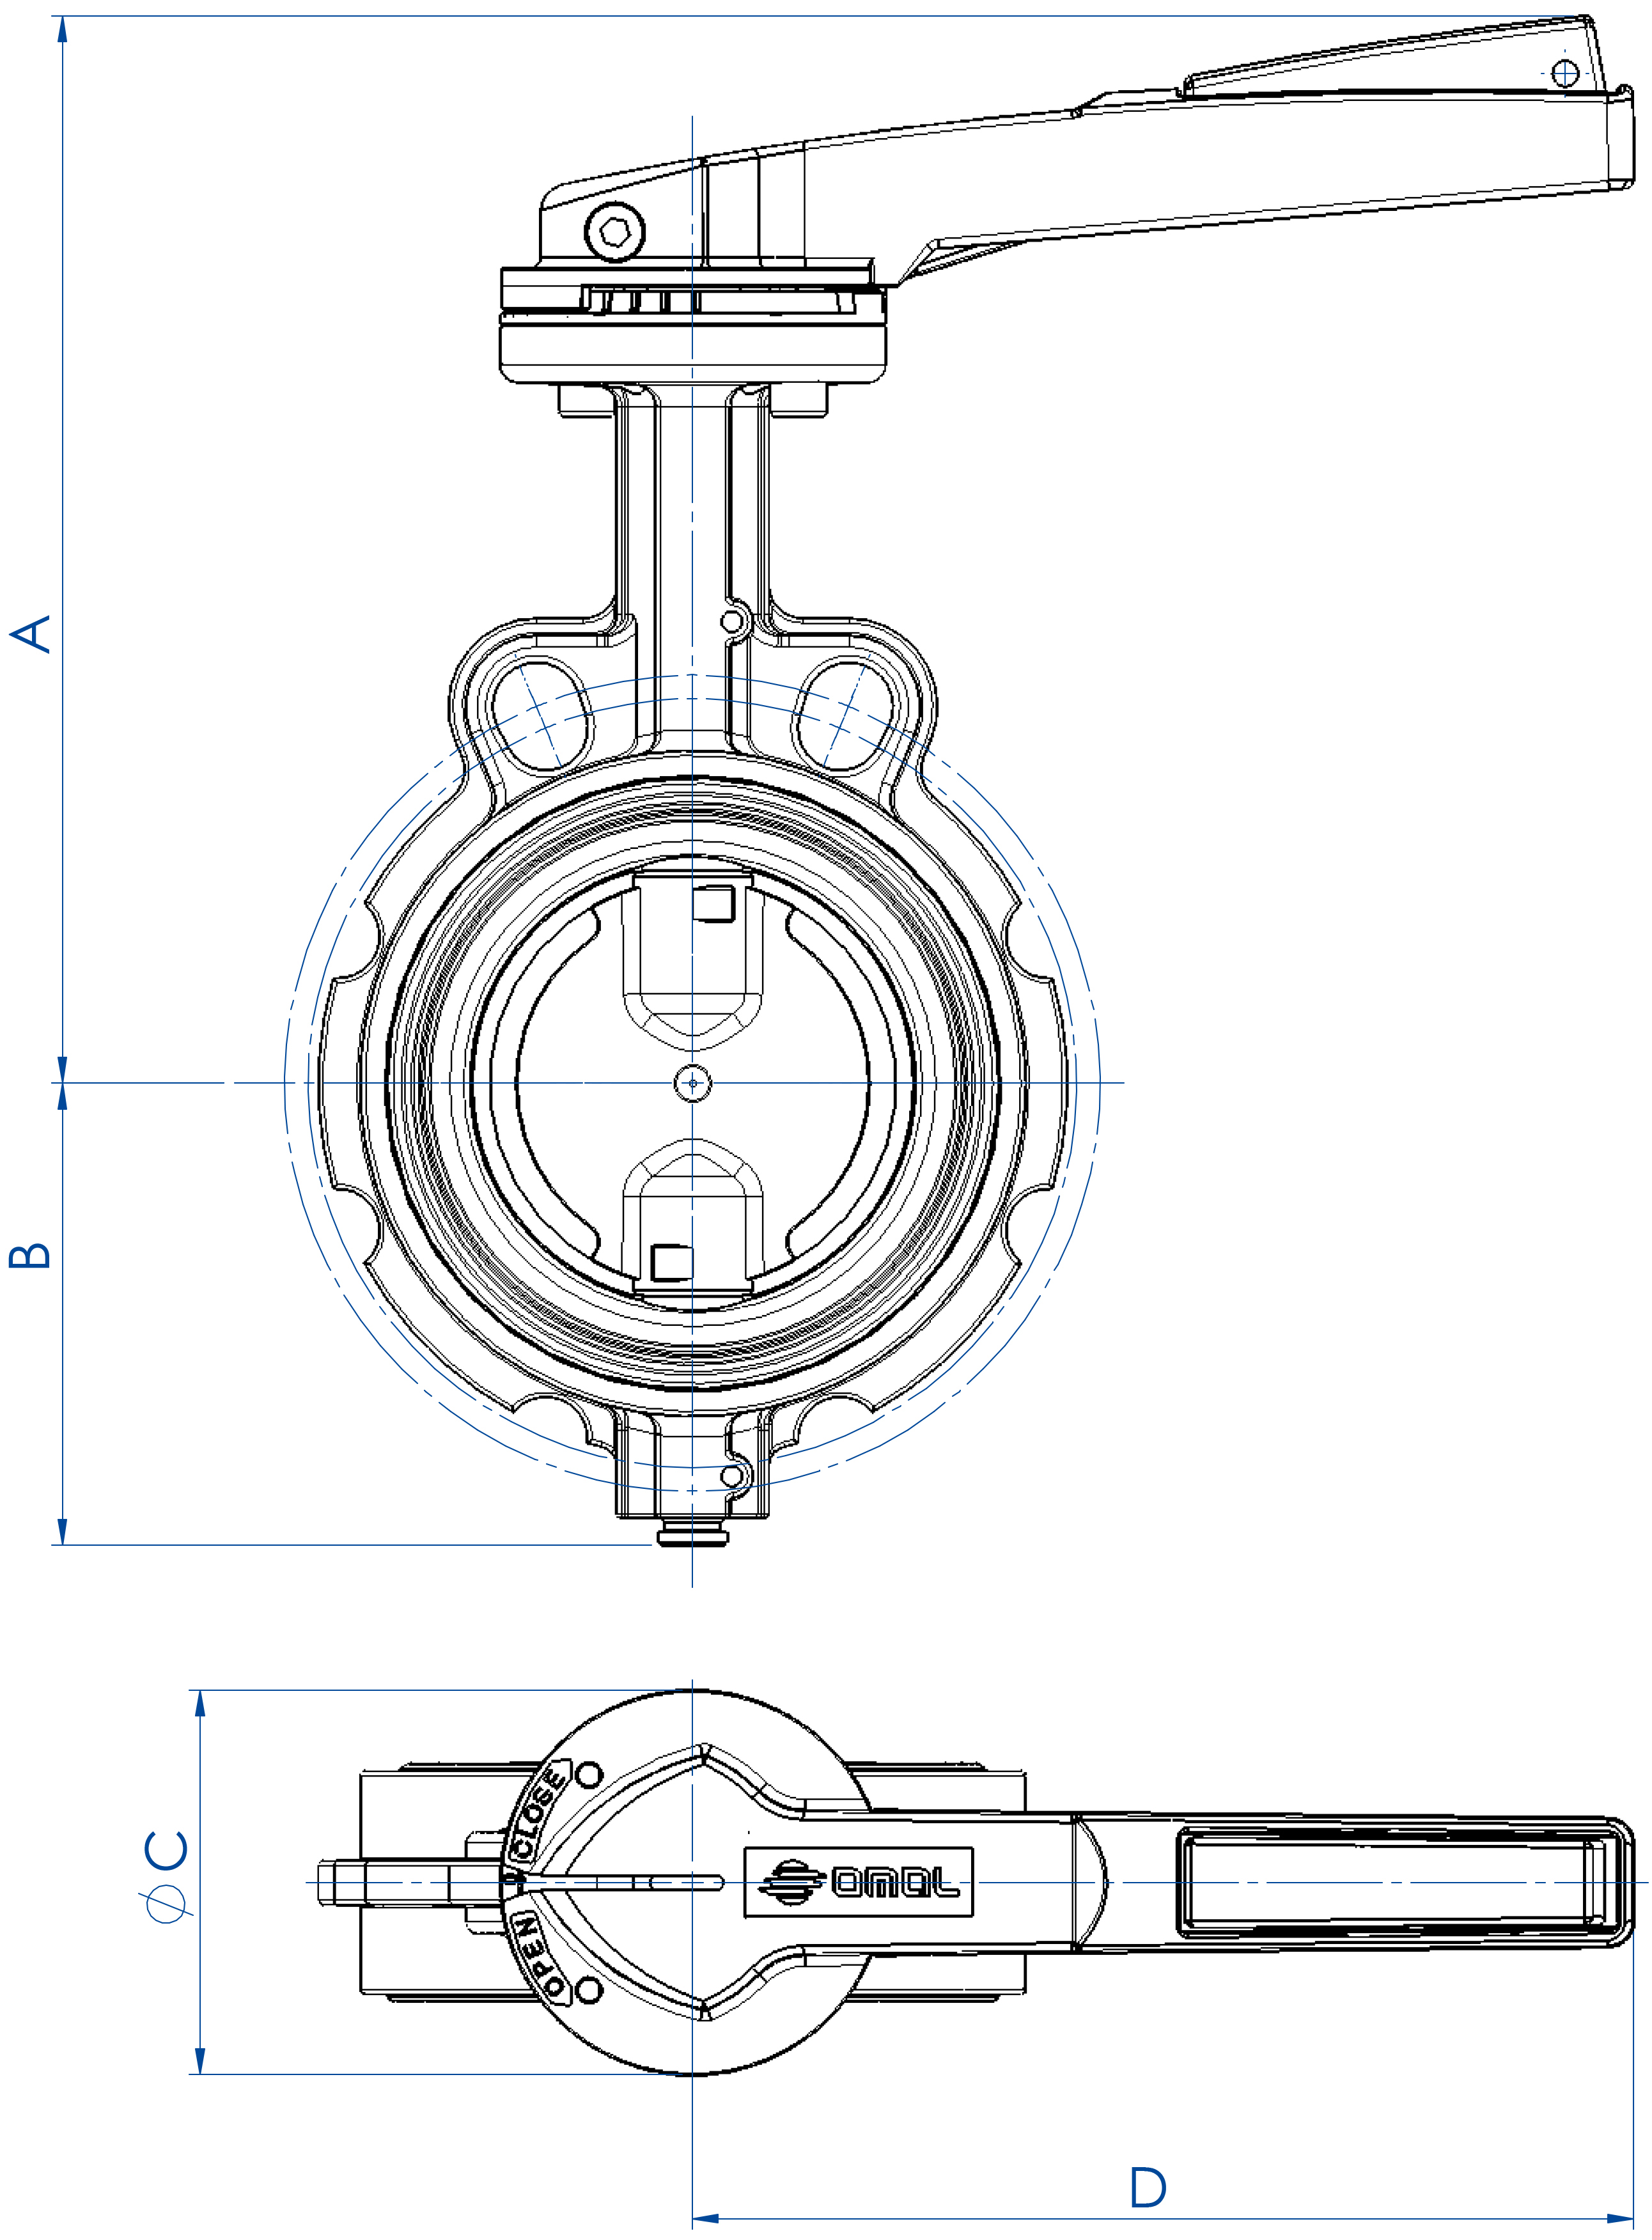 Item 375-376-377 butterfly valve - dimensions - Cast iron body with lever